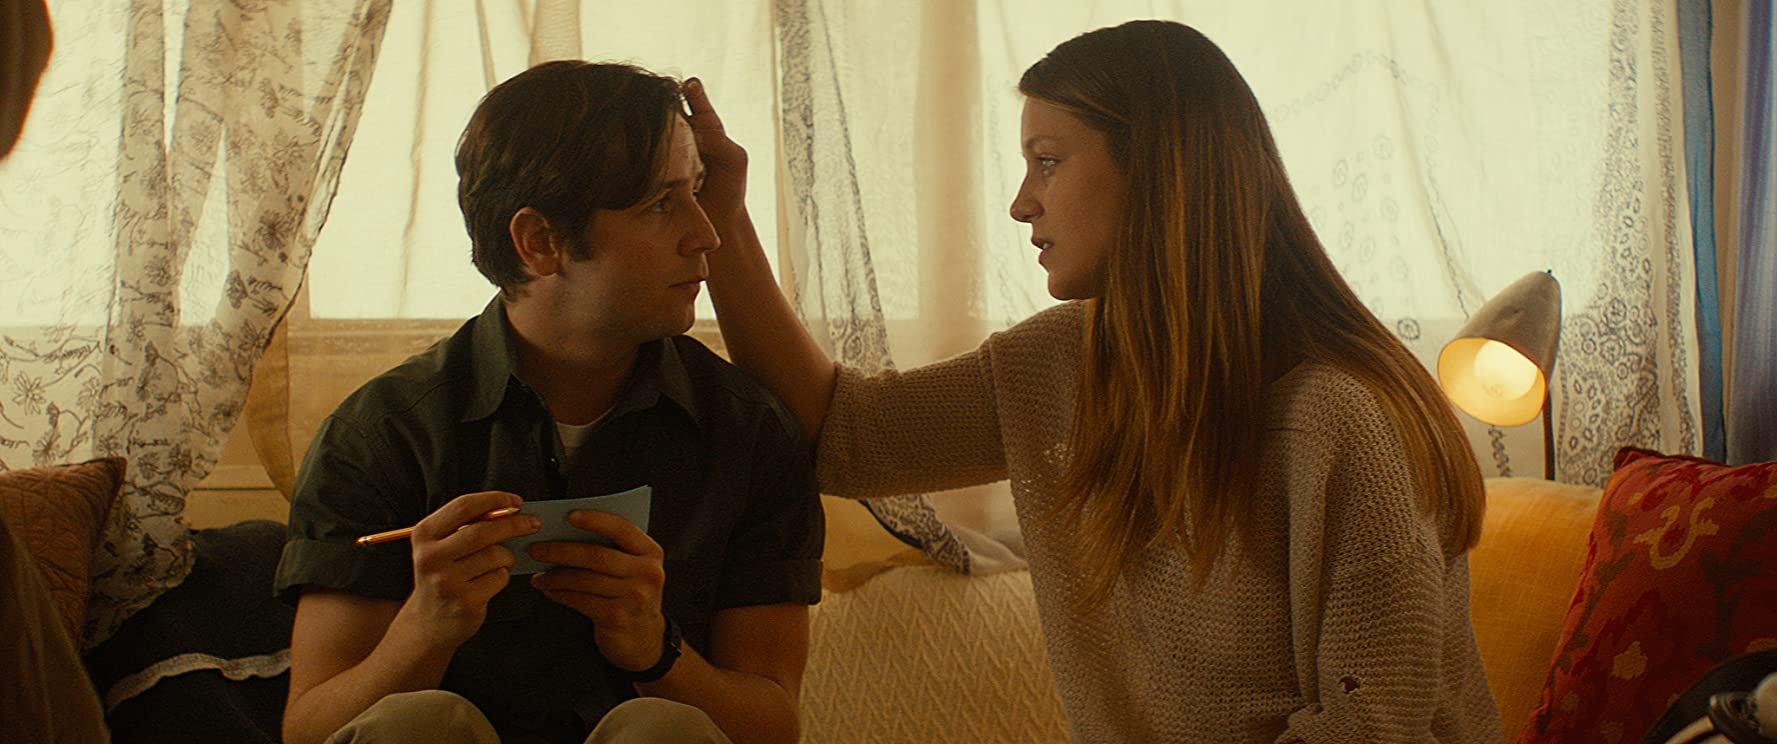 Michael Angarano and Melissa Benoist in Sun Dogs (2017)